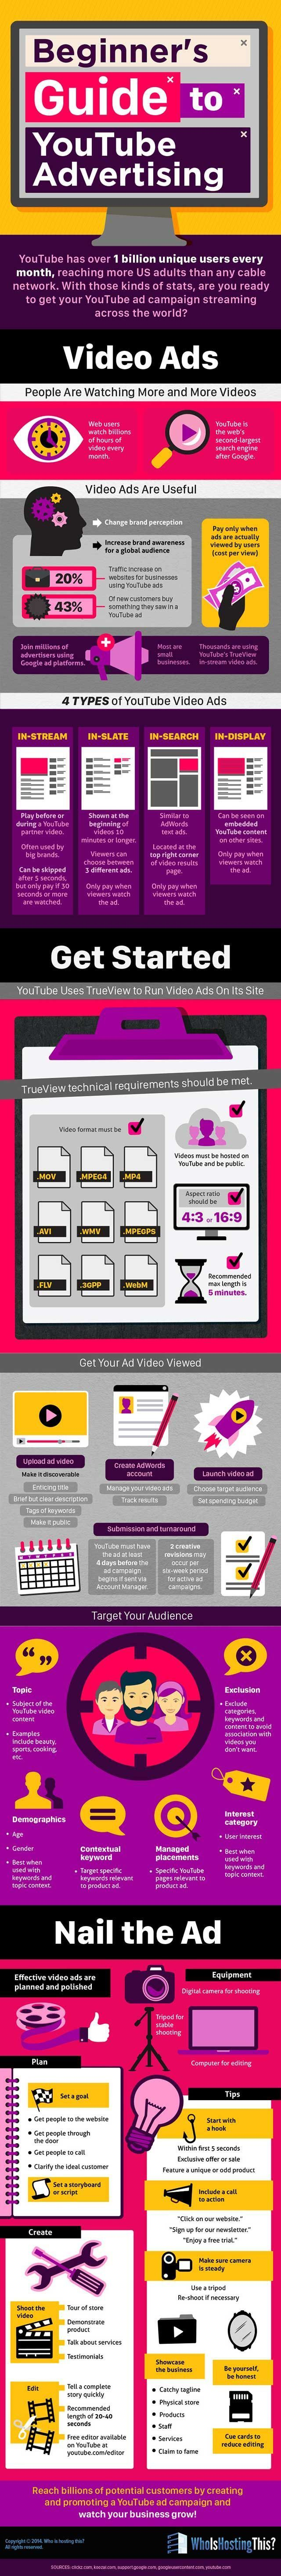 Infographic Offers YouTube Advertising Roadmap: Get Started Fast - | via @borntobesocial